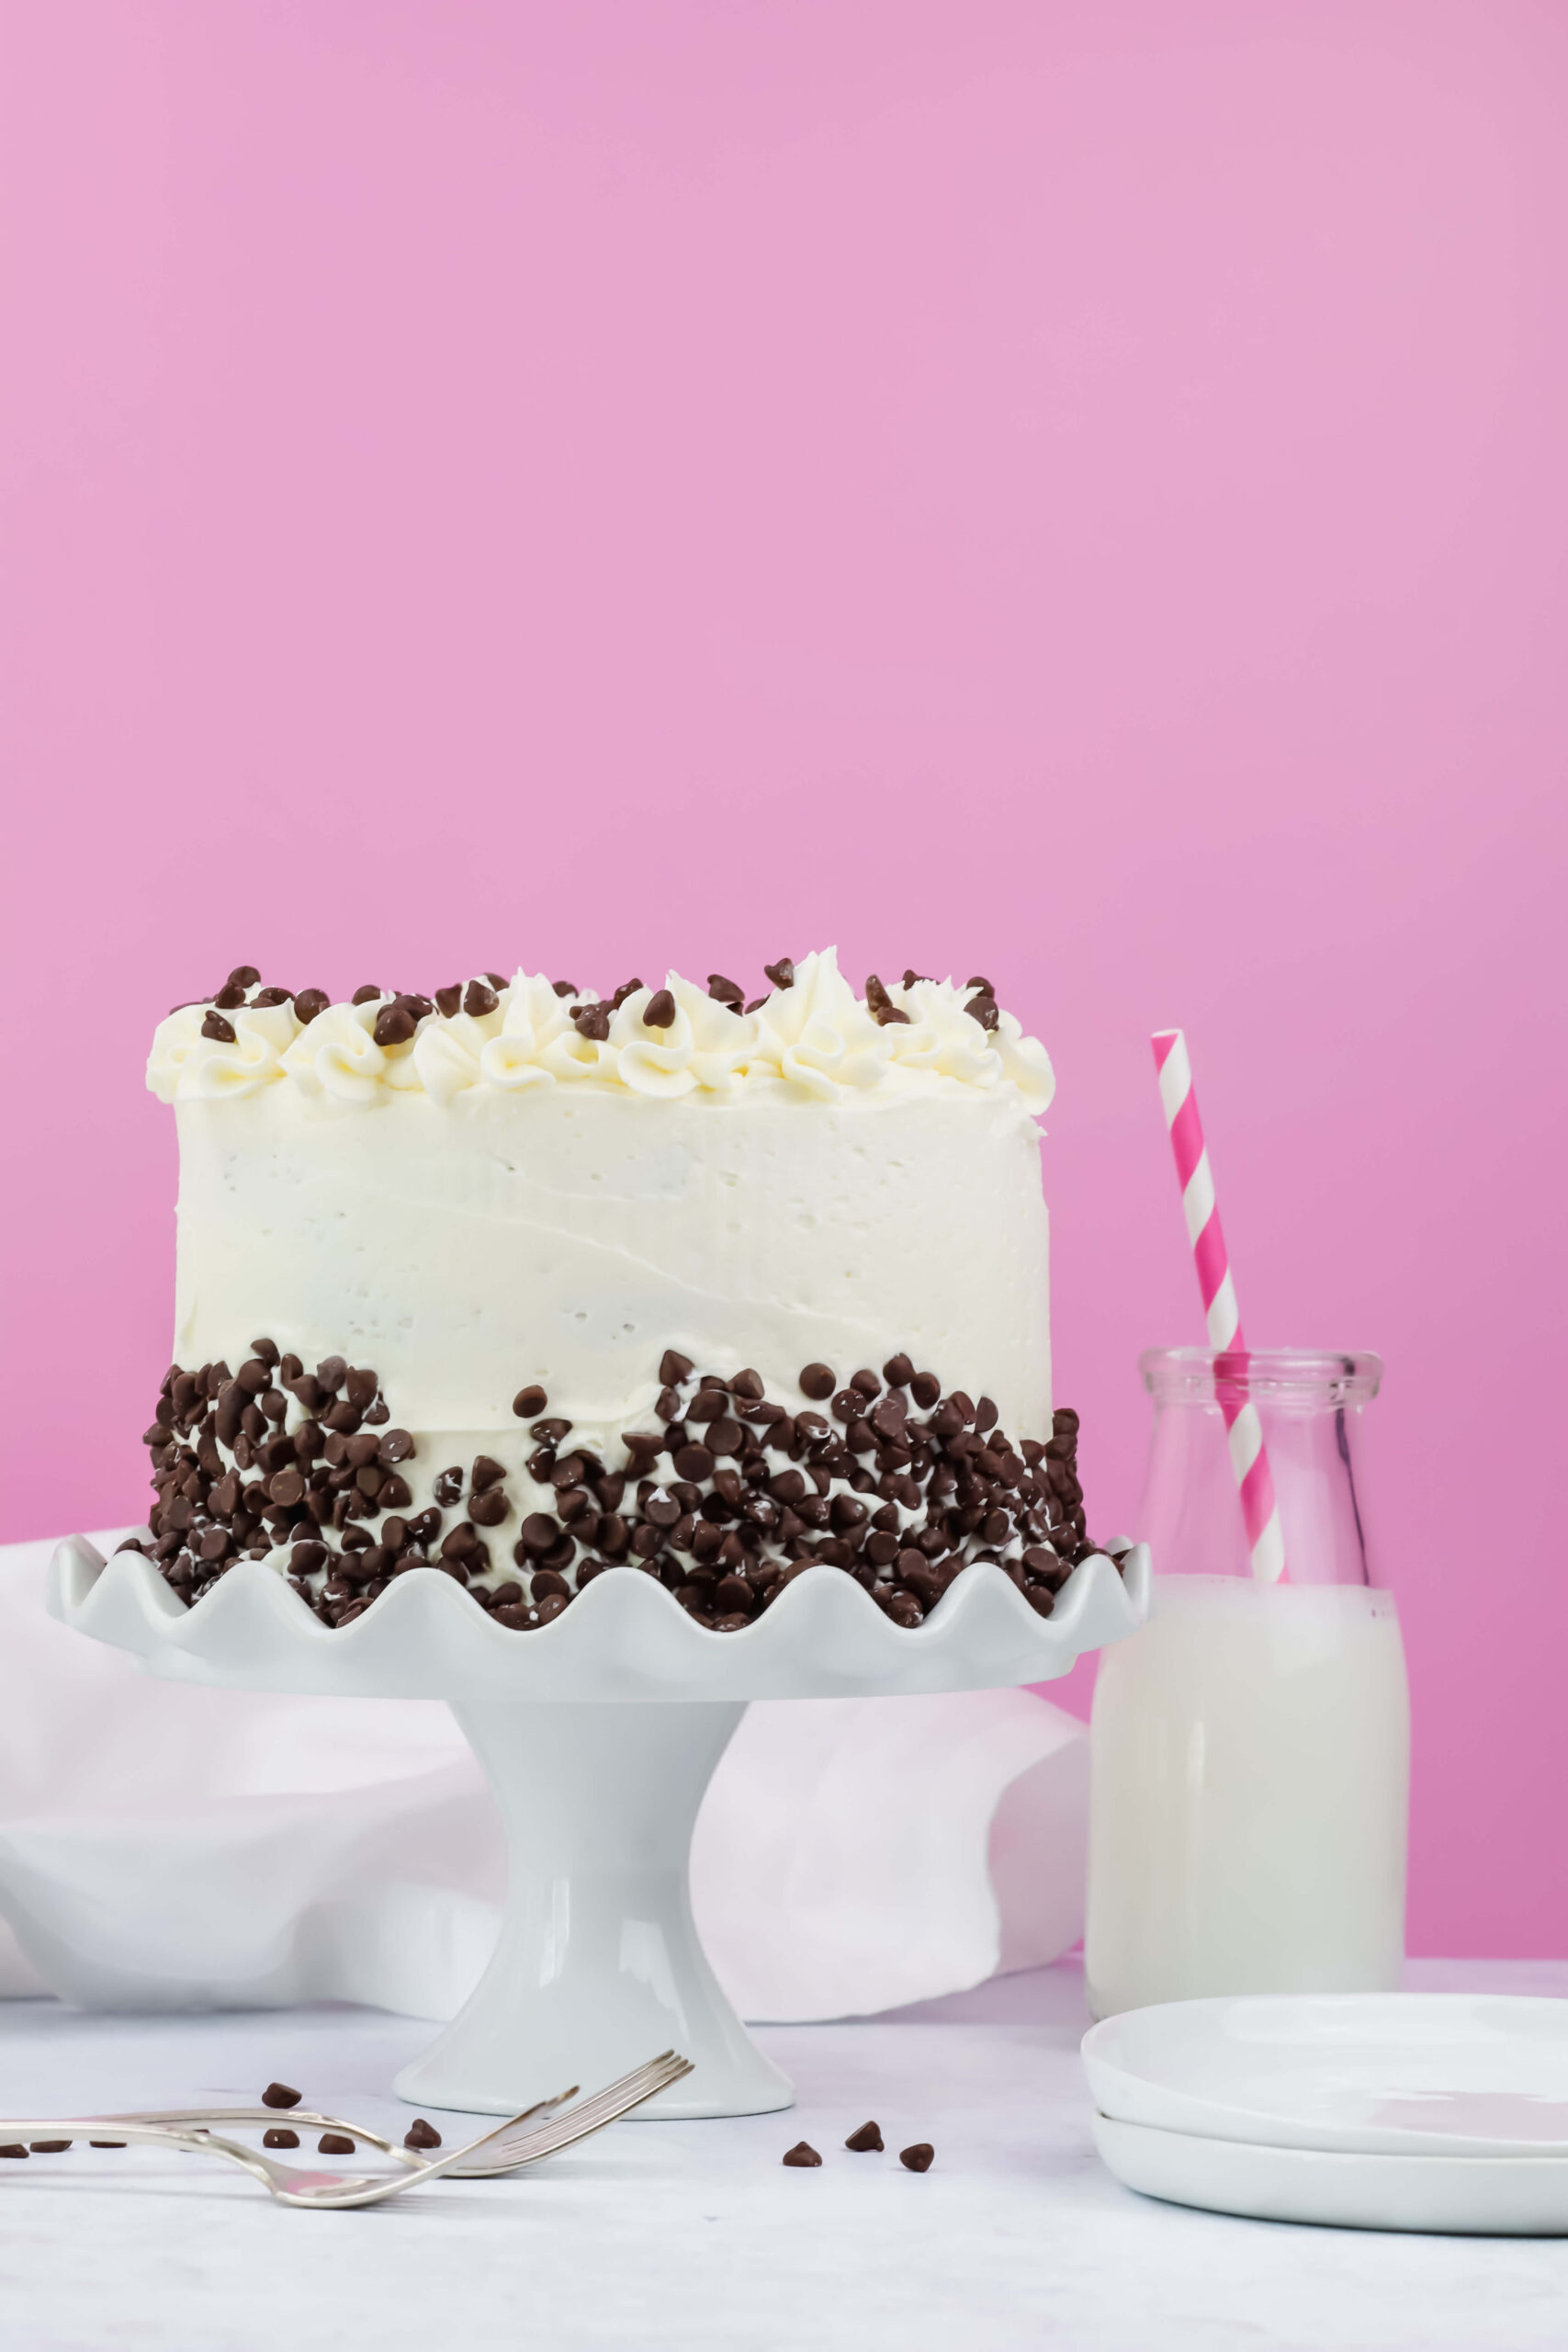 Kate's Safe & Sweet - Chocolate Chip Cookie Dough Cake with Dairy Free Milk